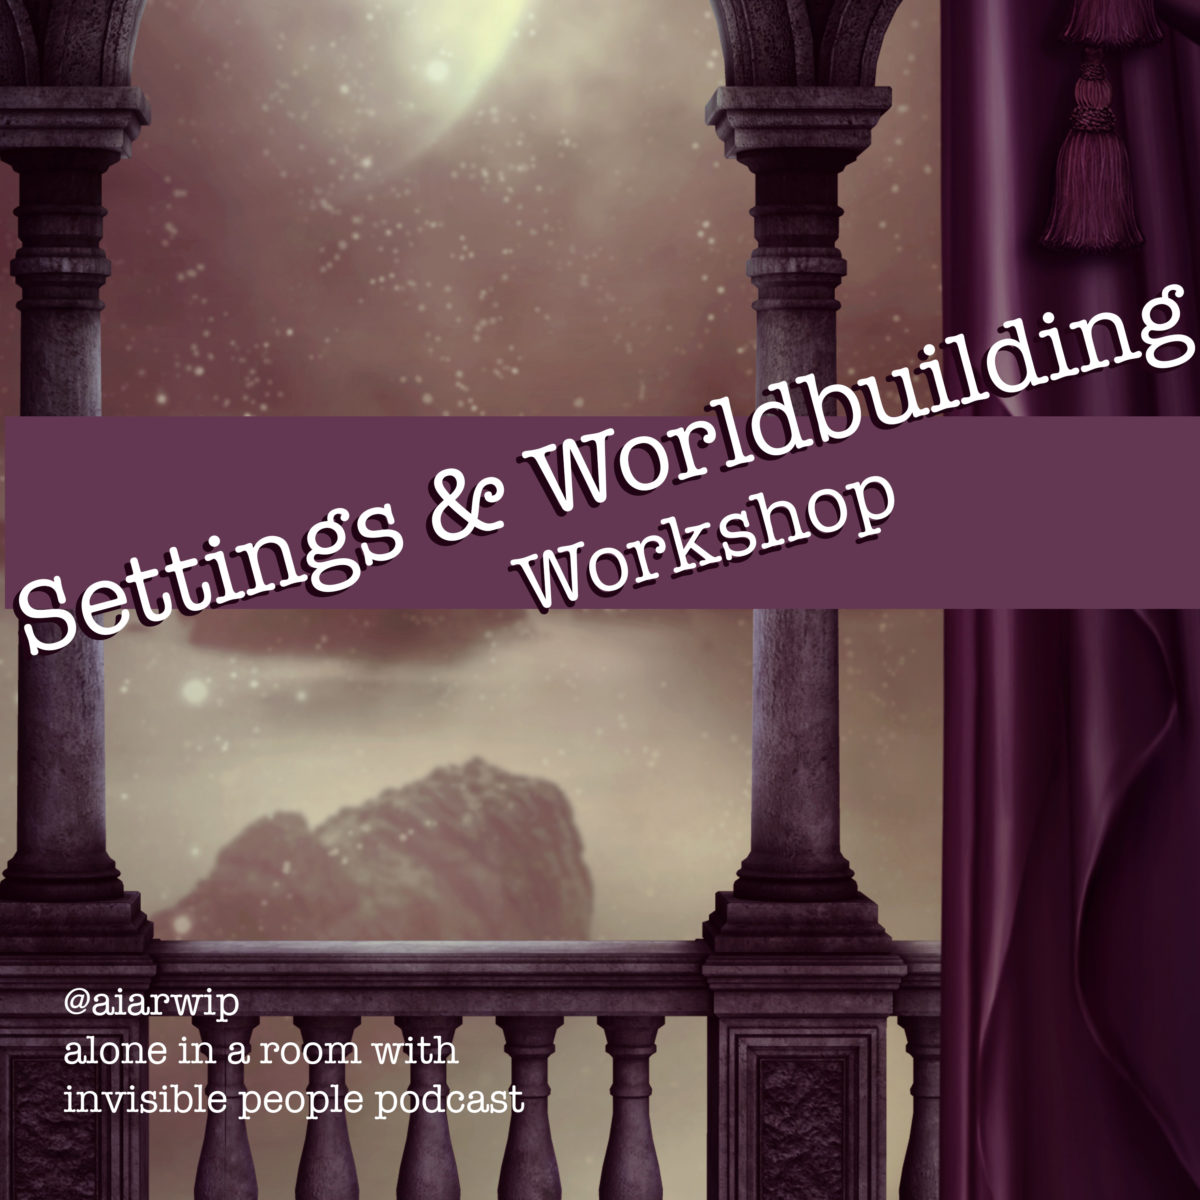 Episode 07: Settings and Worldbuilding